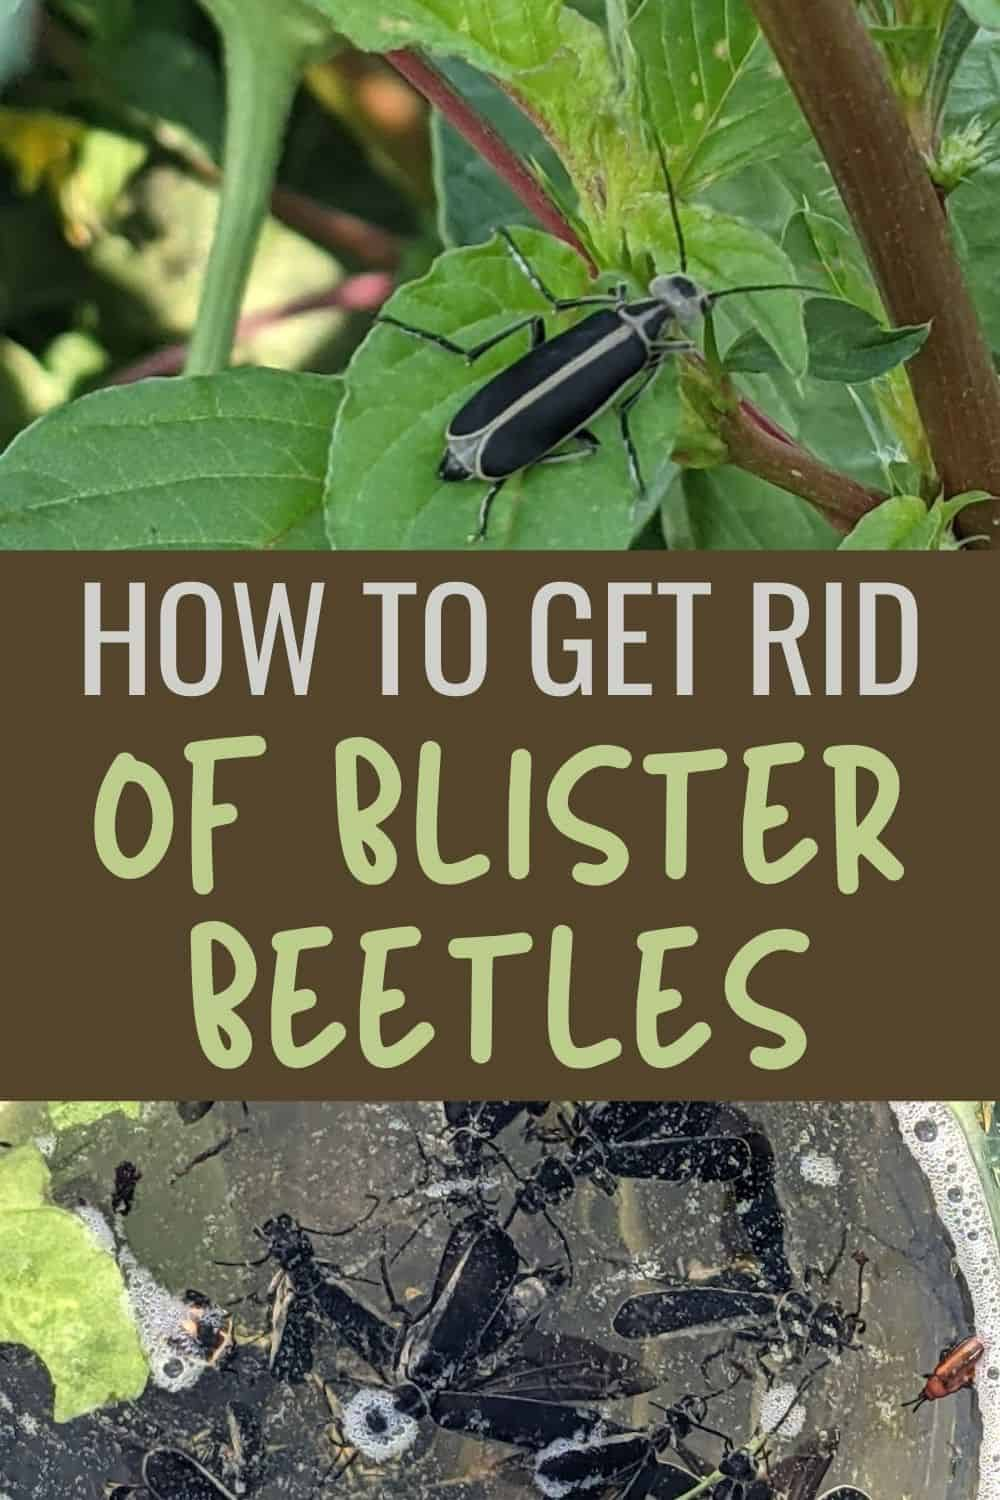 How to get rid of blister beetles